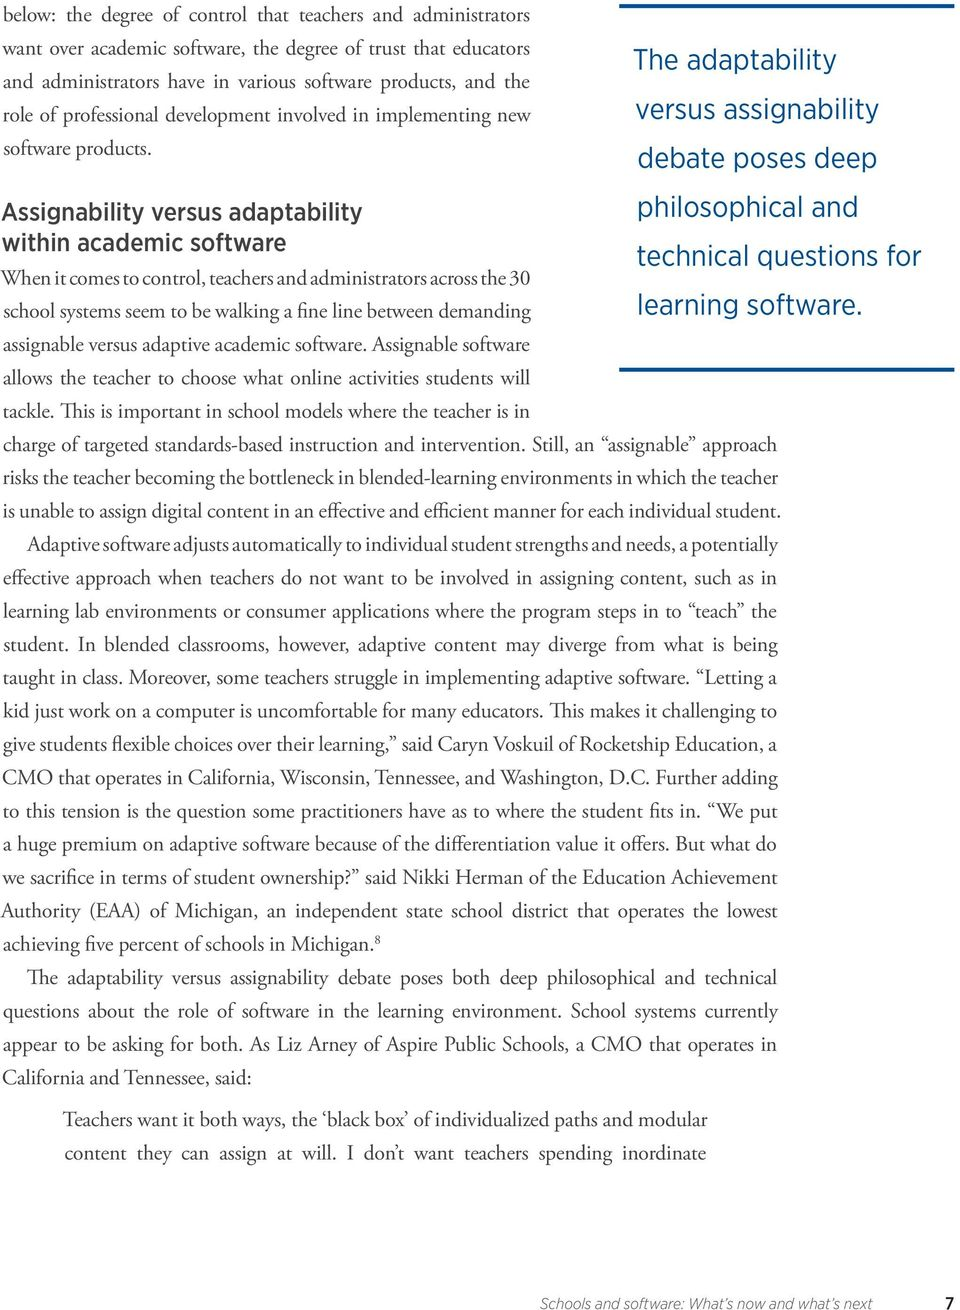 Assignability versus adaptability within academic software When it comes to control, teachers and administrators across the 30 school systems seem to be walking a fine line between demanding